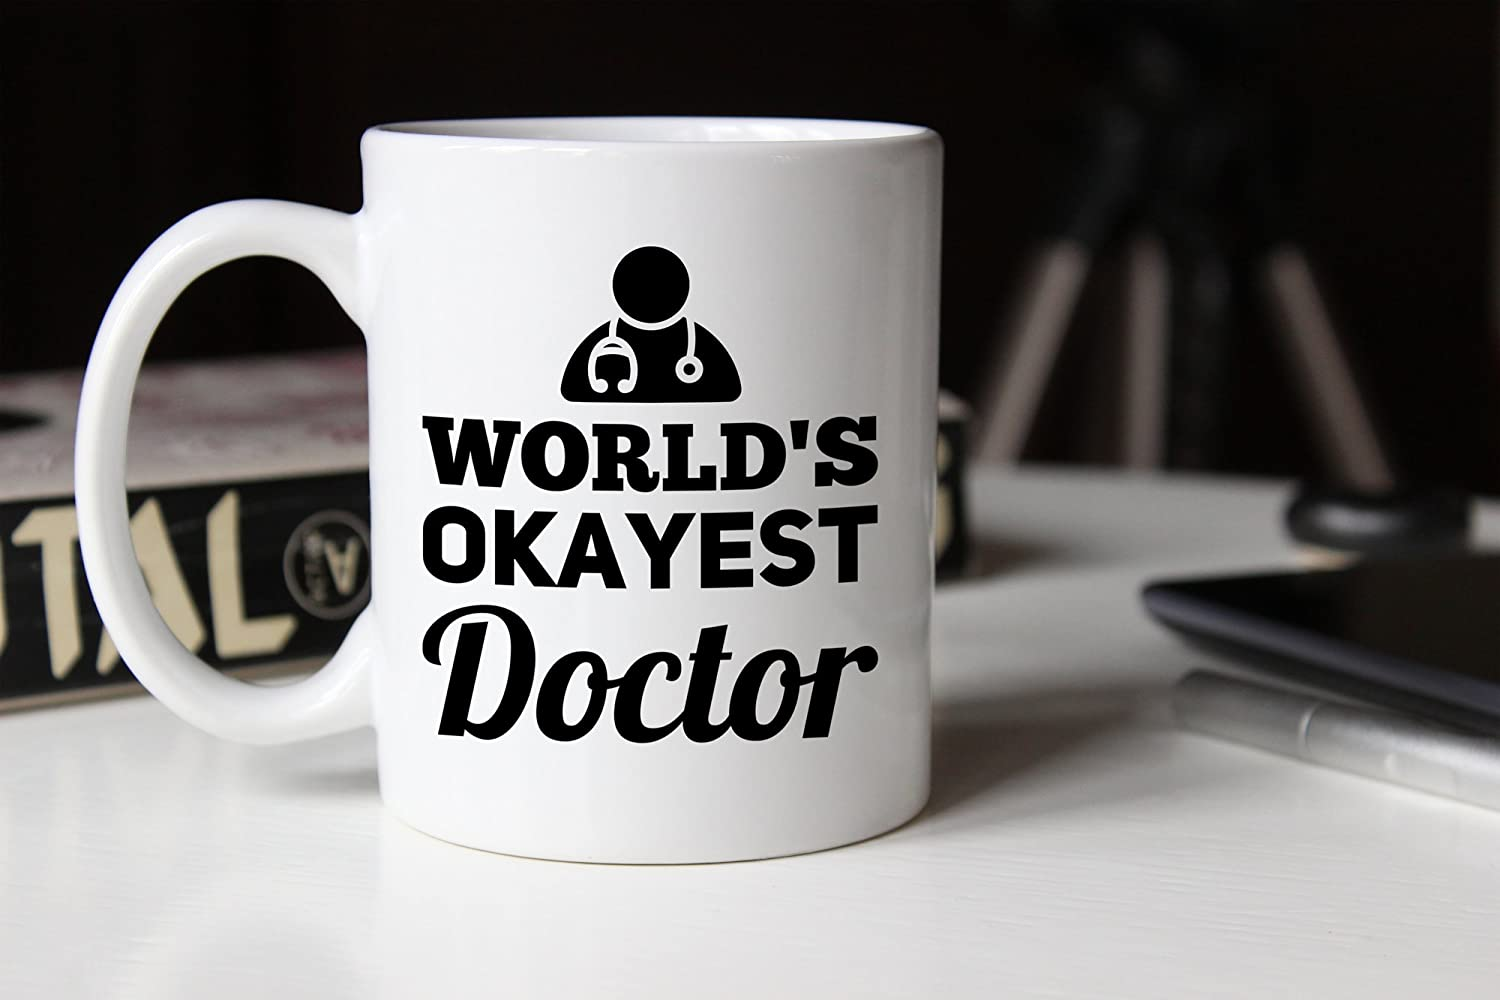 Worlds best doctor coffee mugs - Amazon Com Medical Doctor Mug World S Okayest Doctor Funny Coffee Mug With Humorous Quote 11 Oz Ceramic Cup With Gag For Office Friend Family Best